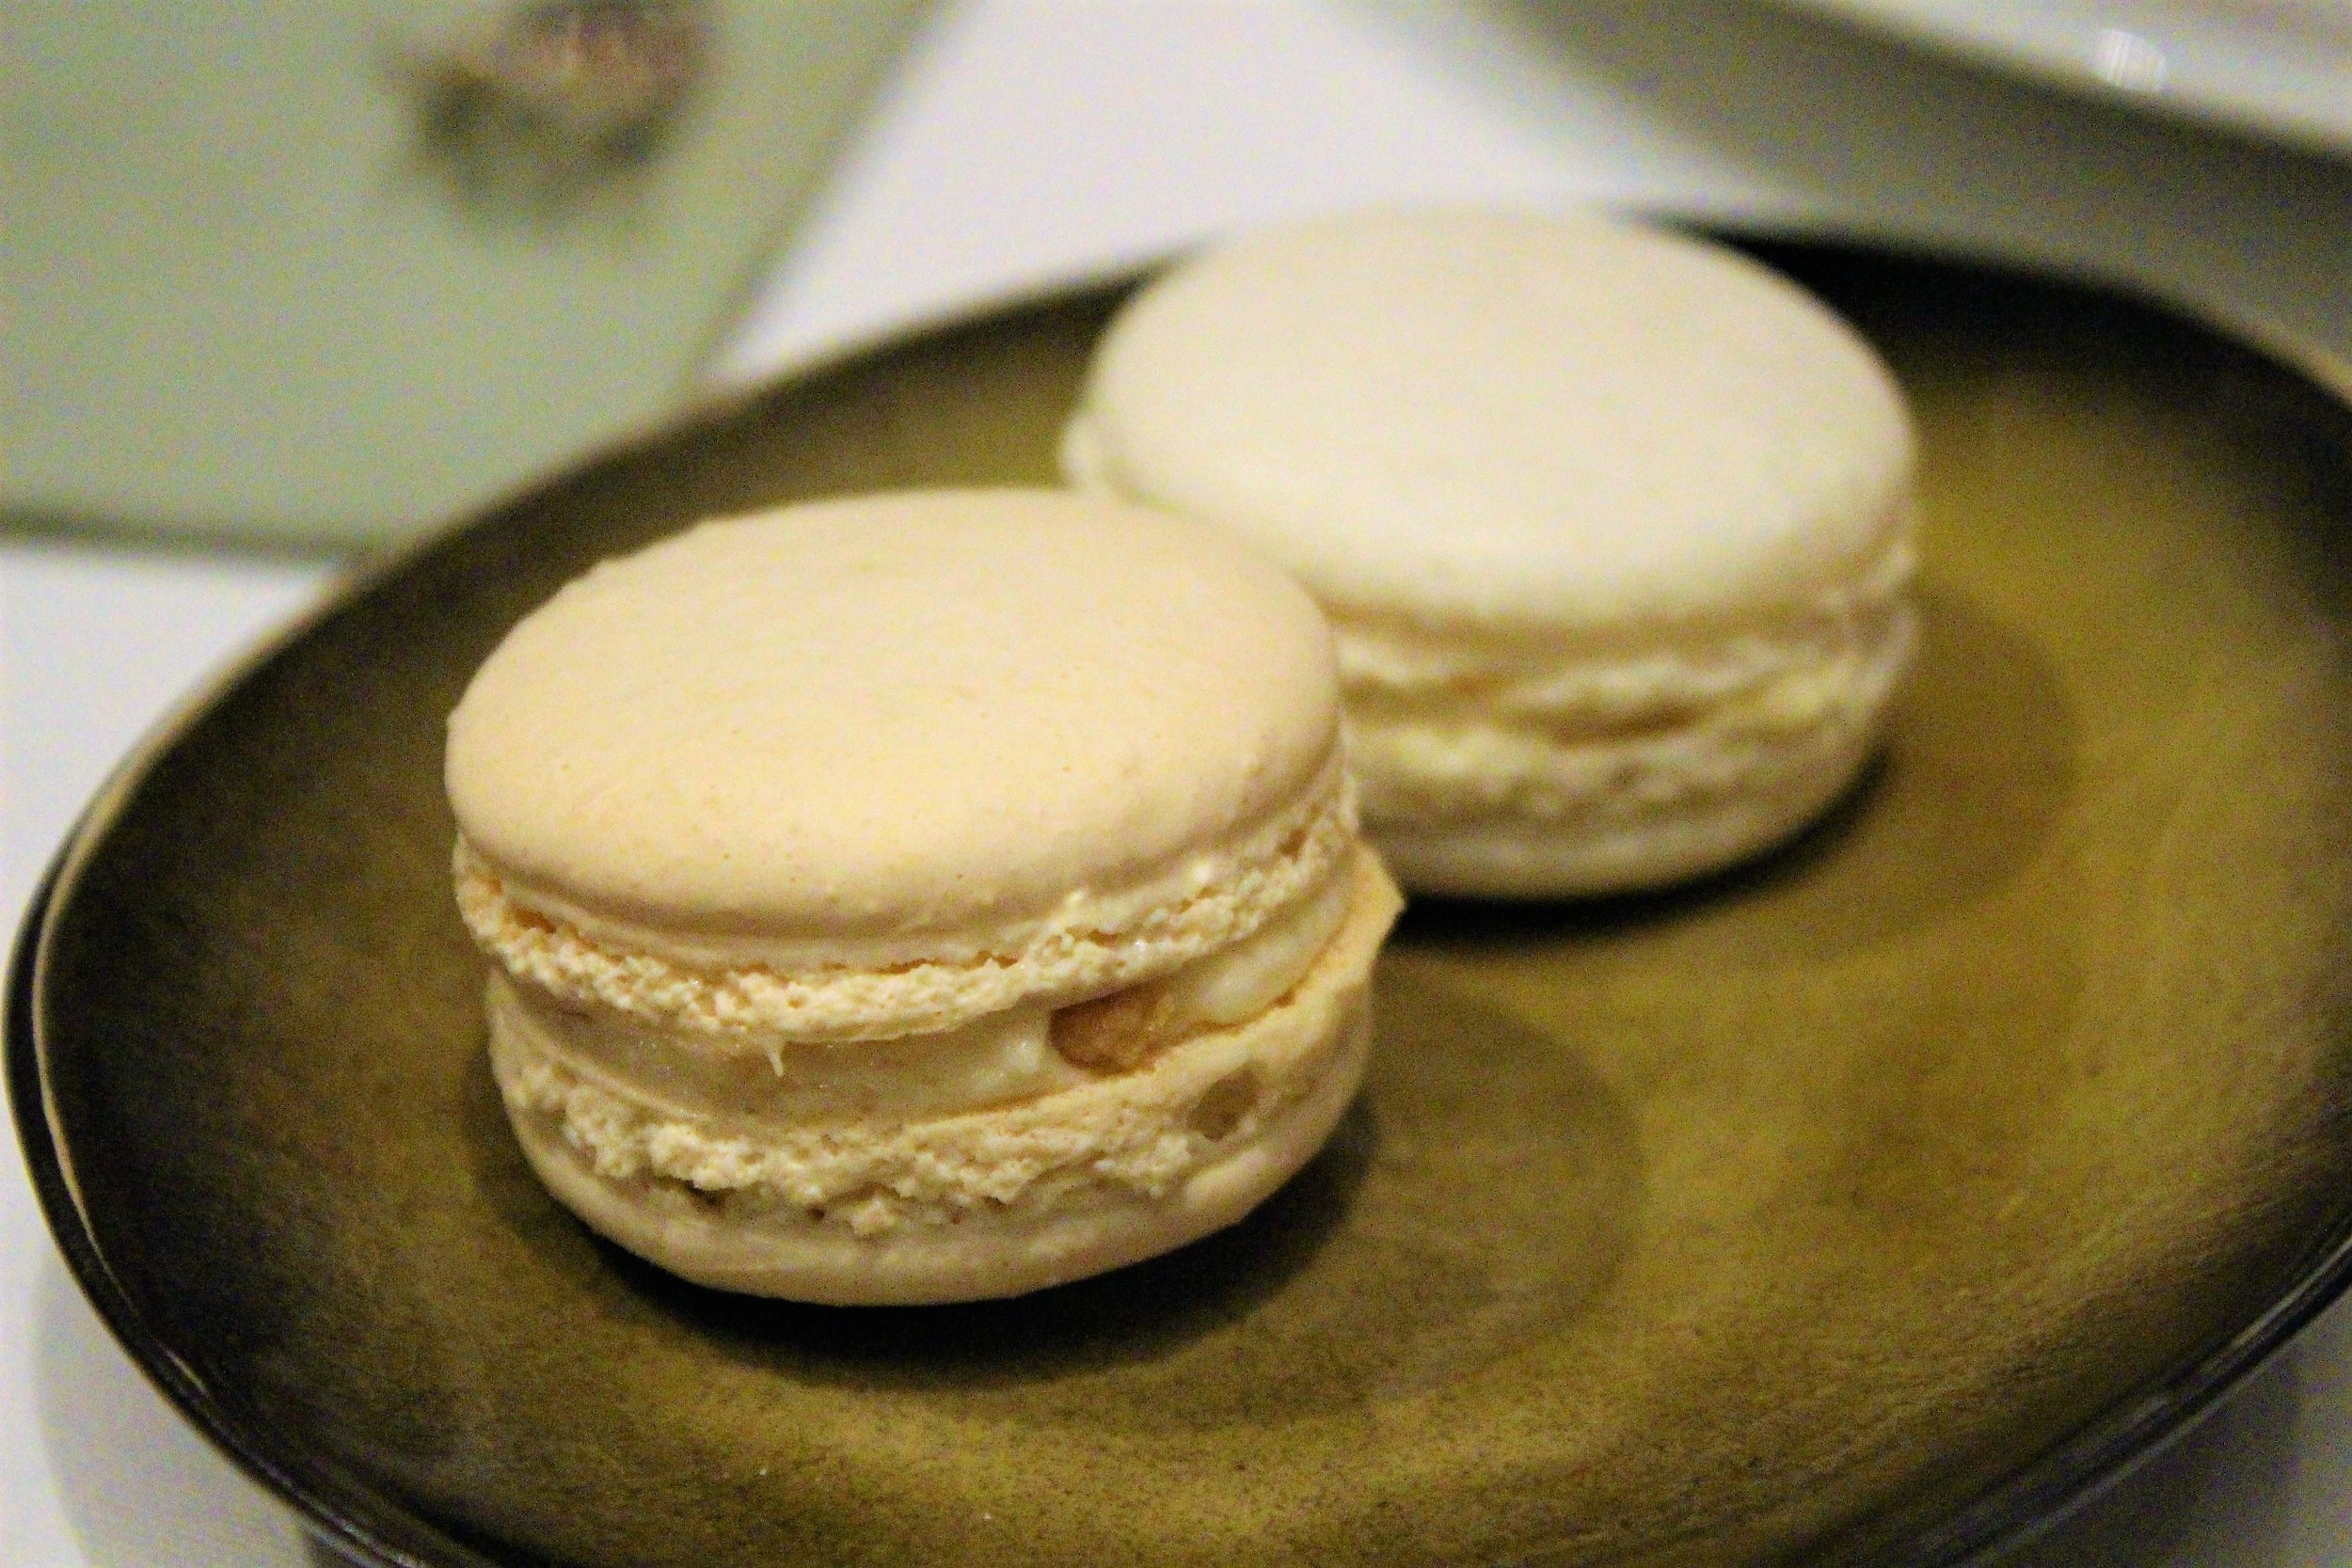 Macaron at Gabriel Kreuther in New York City